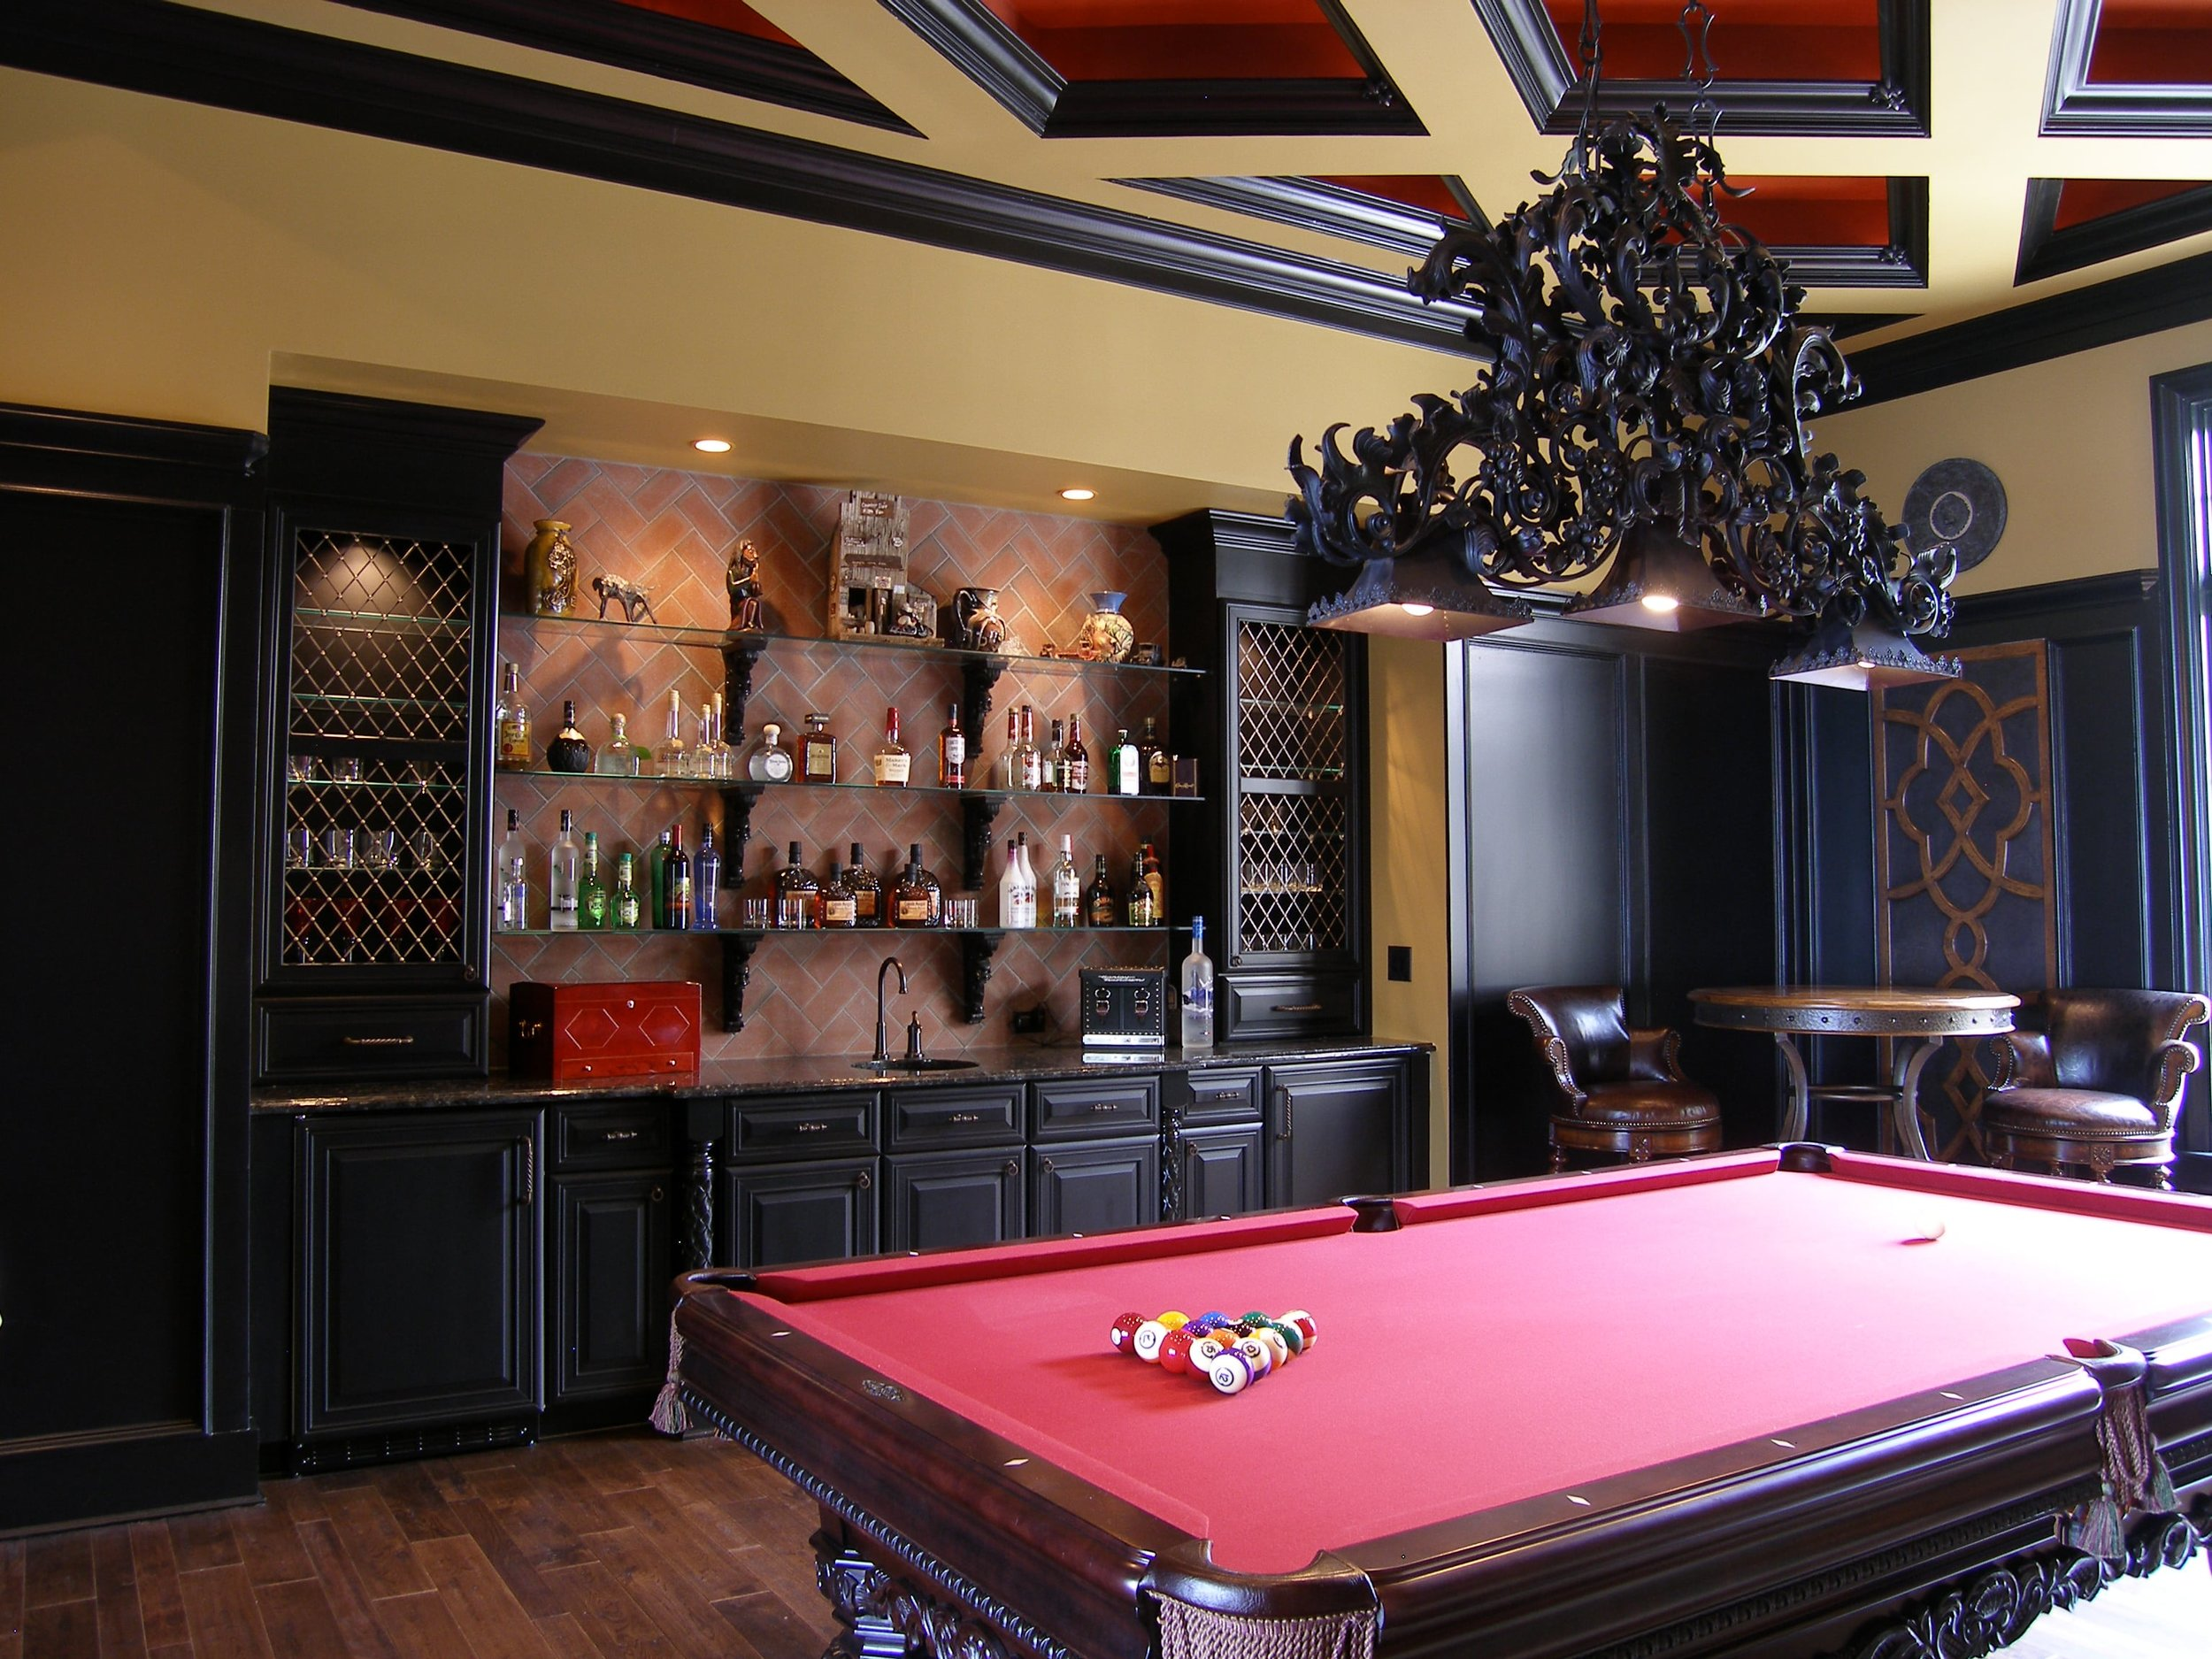 Billiards Room with custom coffered ceiling and built in bar. Brick back splash adds to the old world feel of the home.